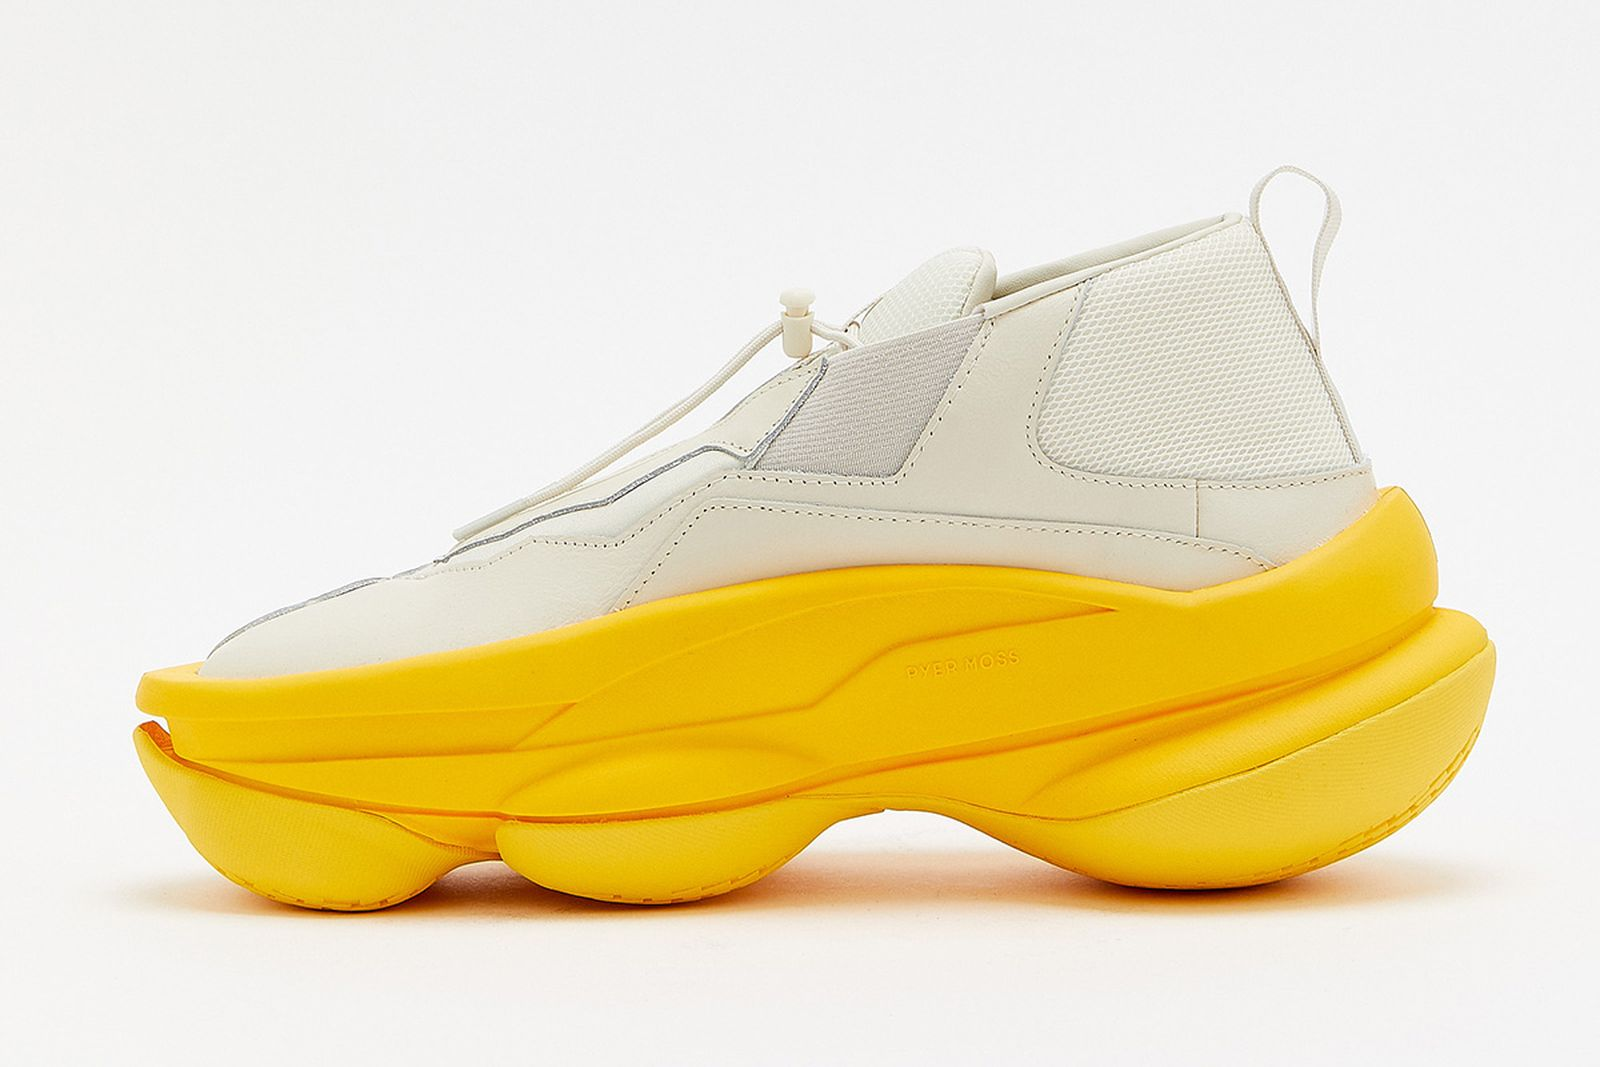 pyer-moss-sculpt-white-yellow-release-date-price-08